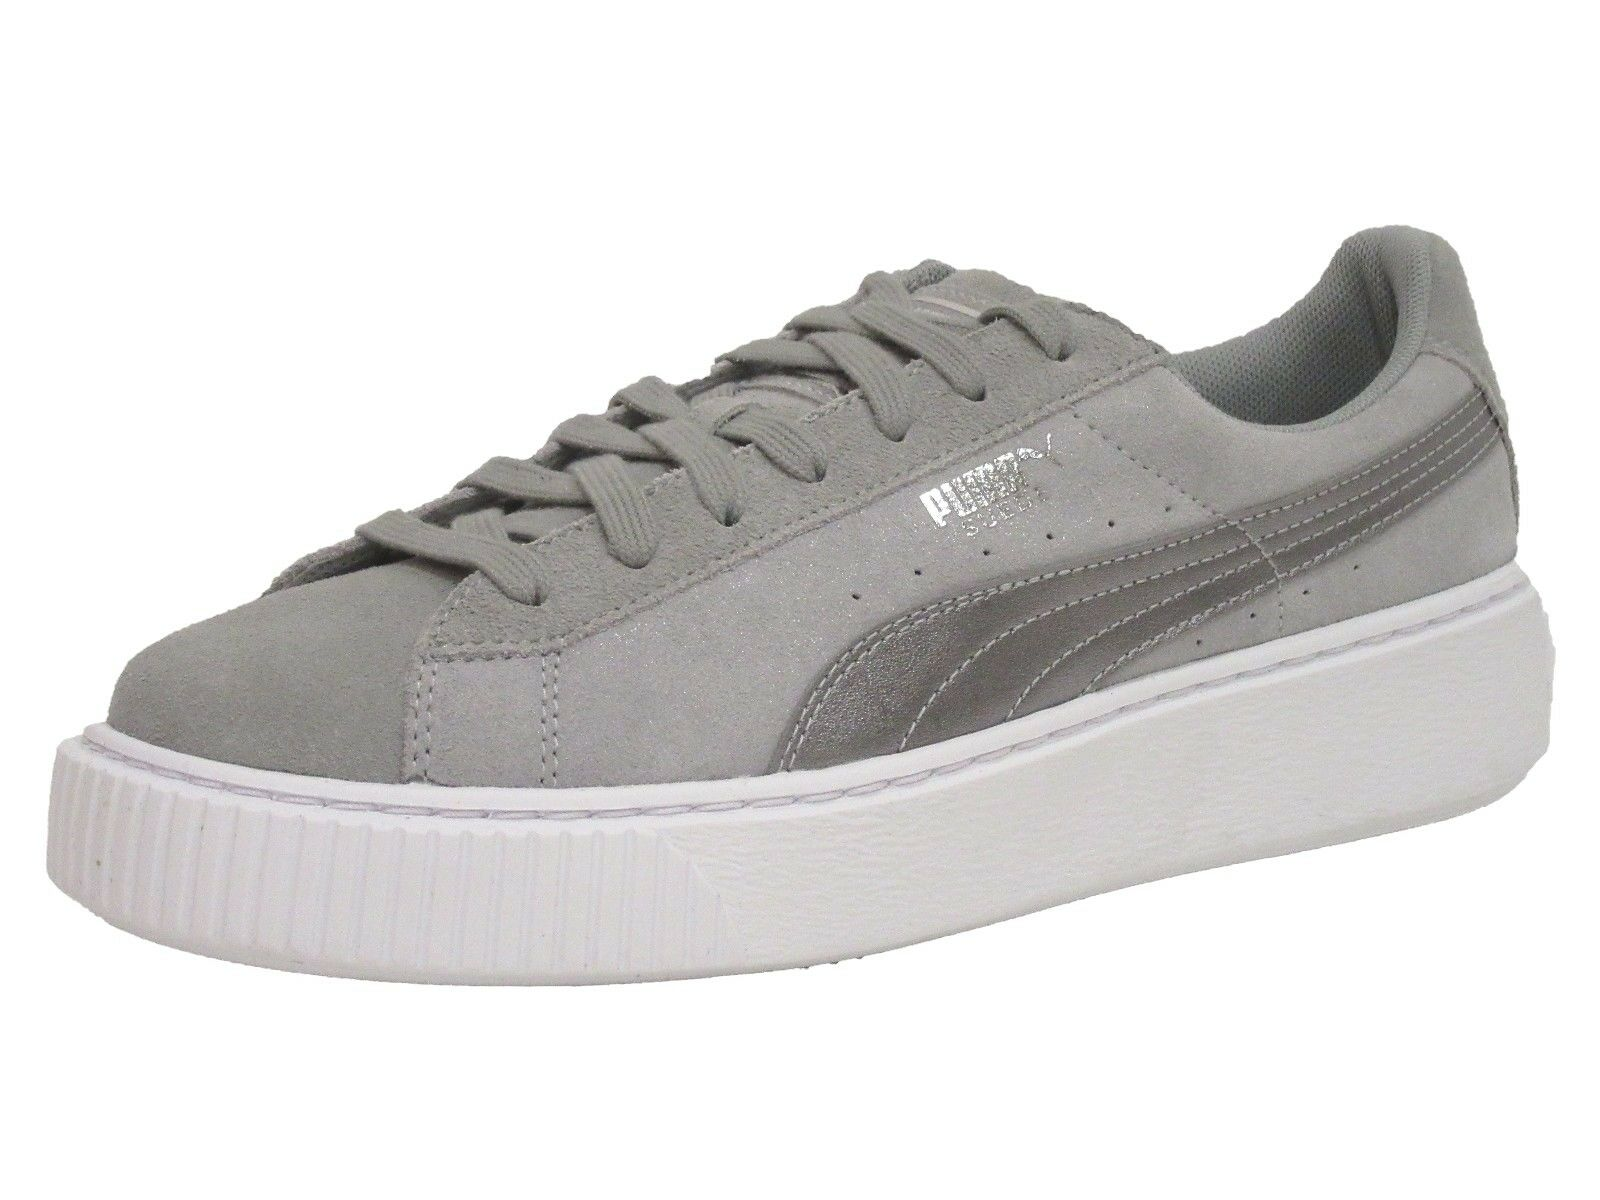 PUMA Women's Suede Platform Safari Wn, Quarry-Quarry, 10 M US